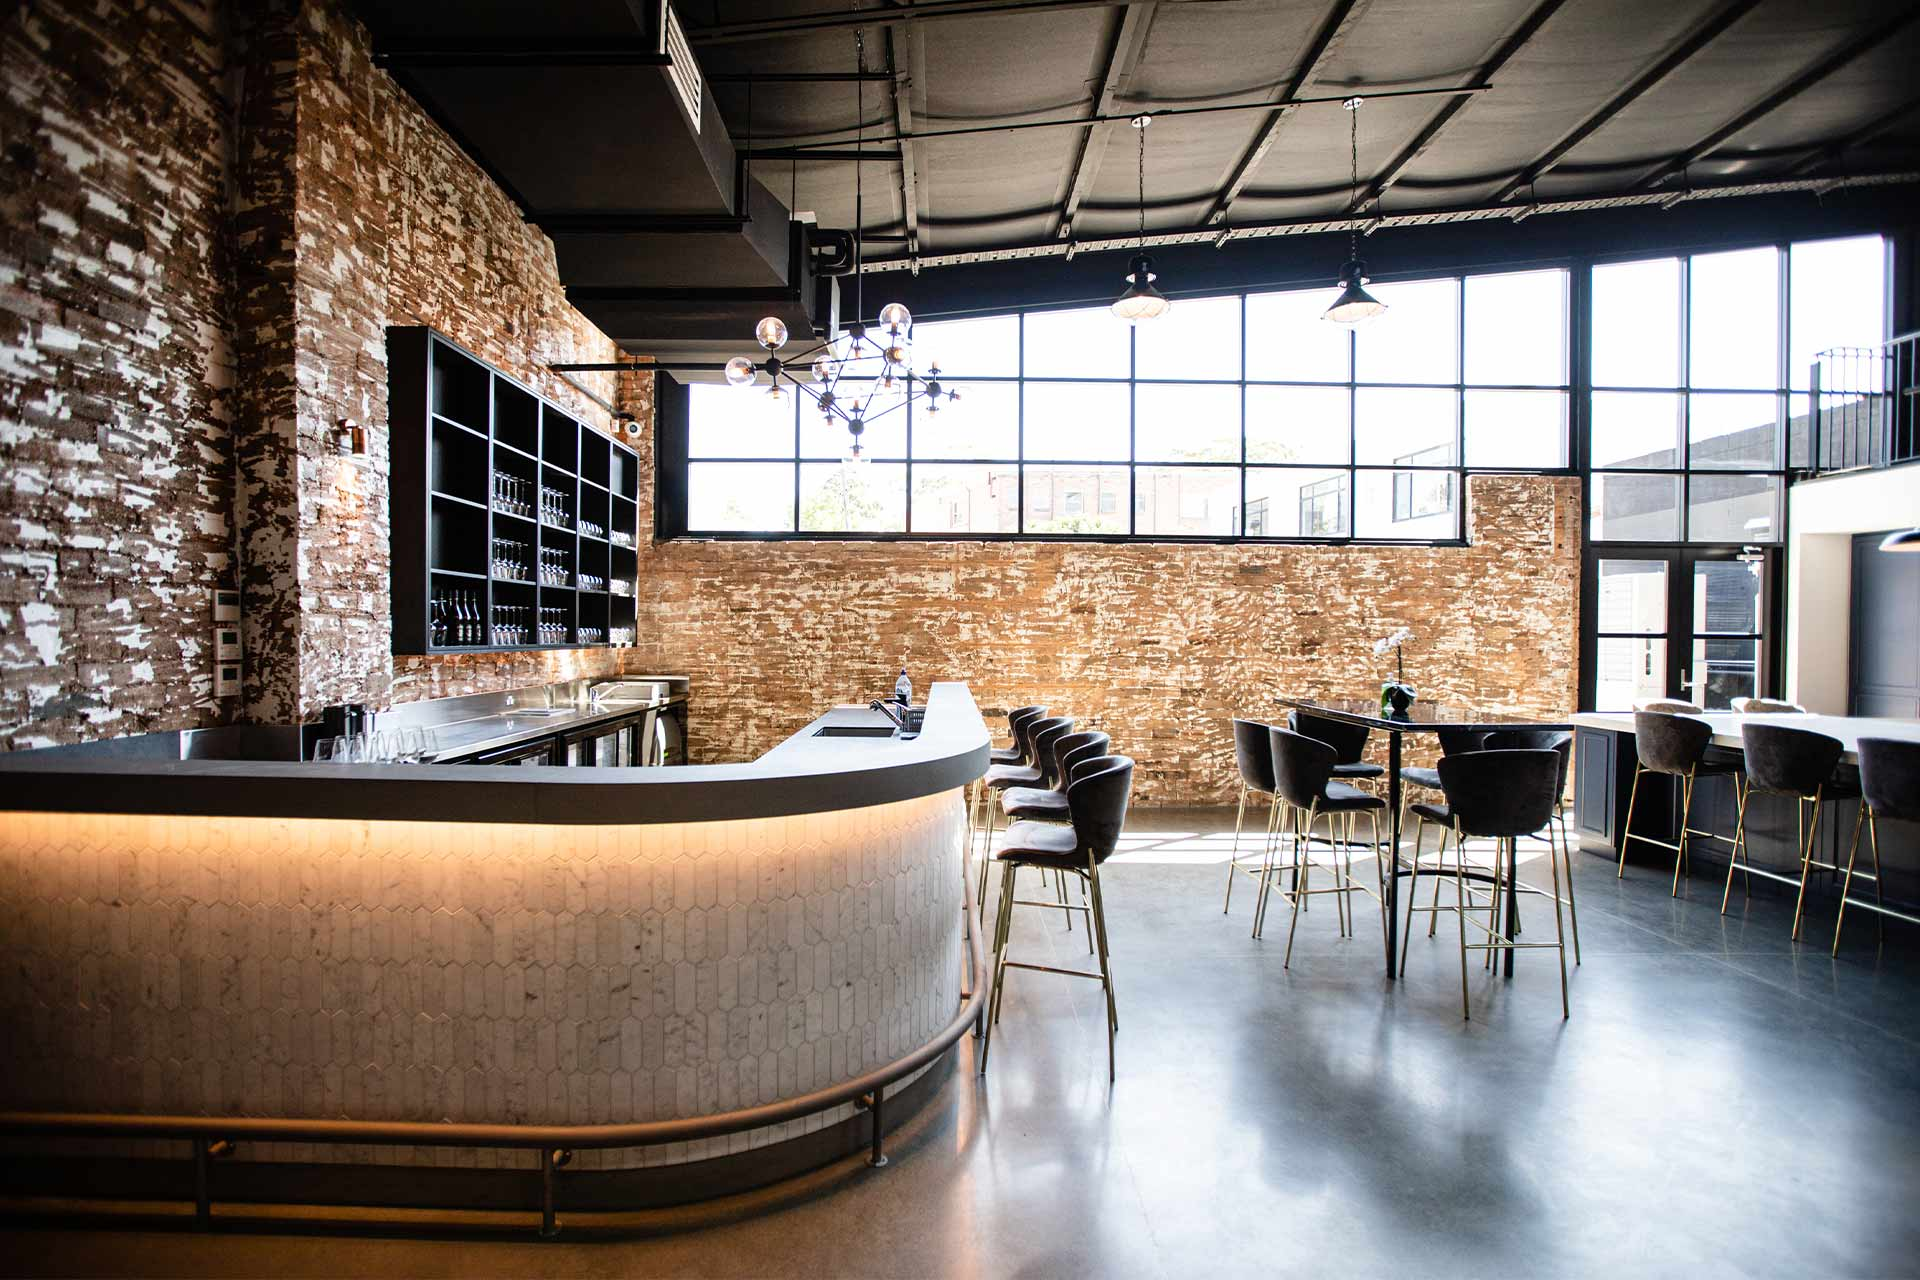 Bar with table and chairs in warehouse space